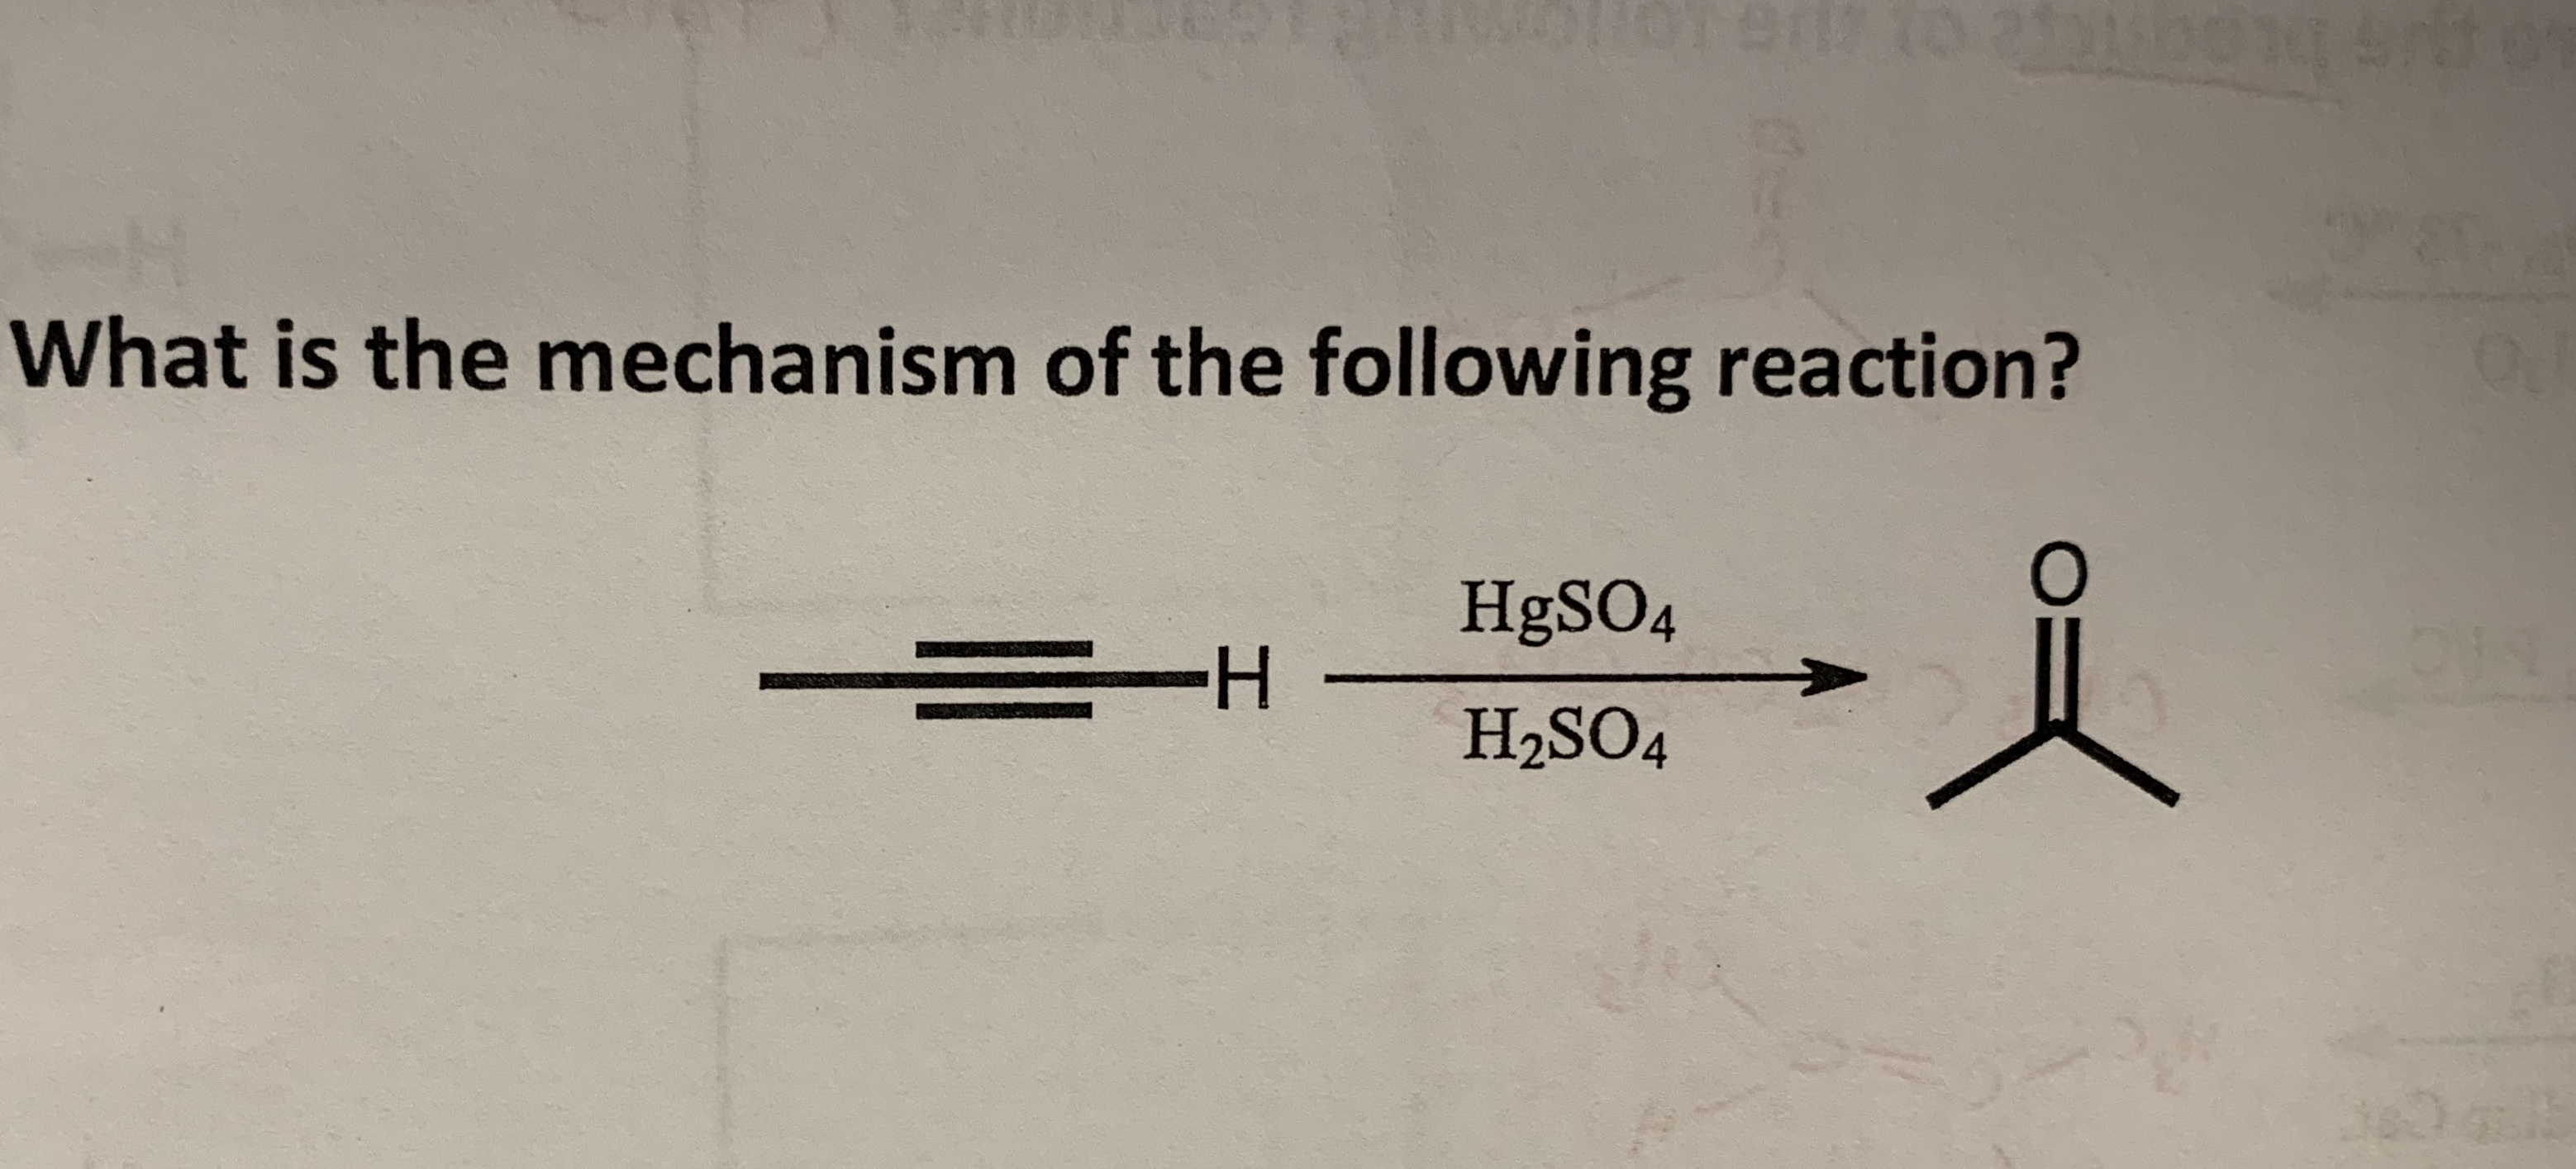 What is the mechanism of the following reaction? HgSO4 H2SO4